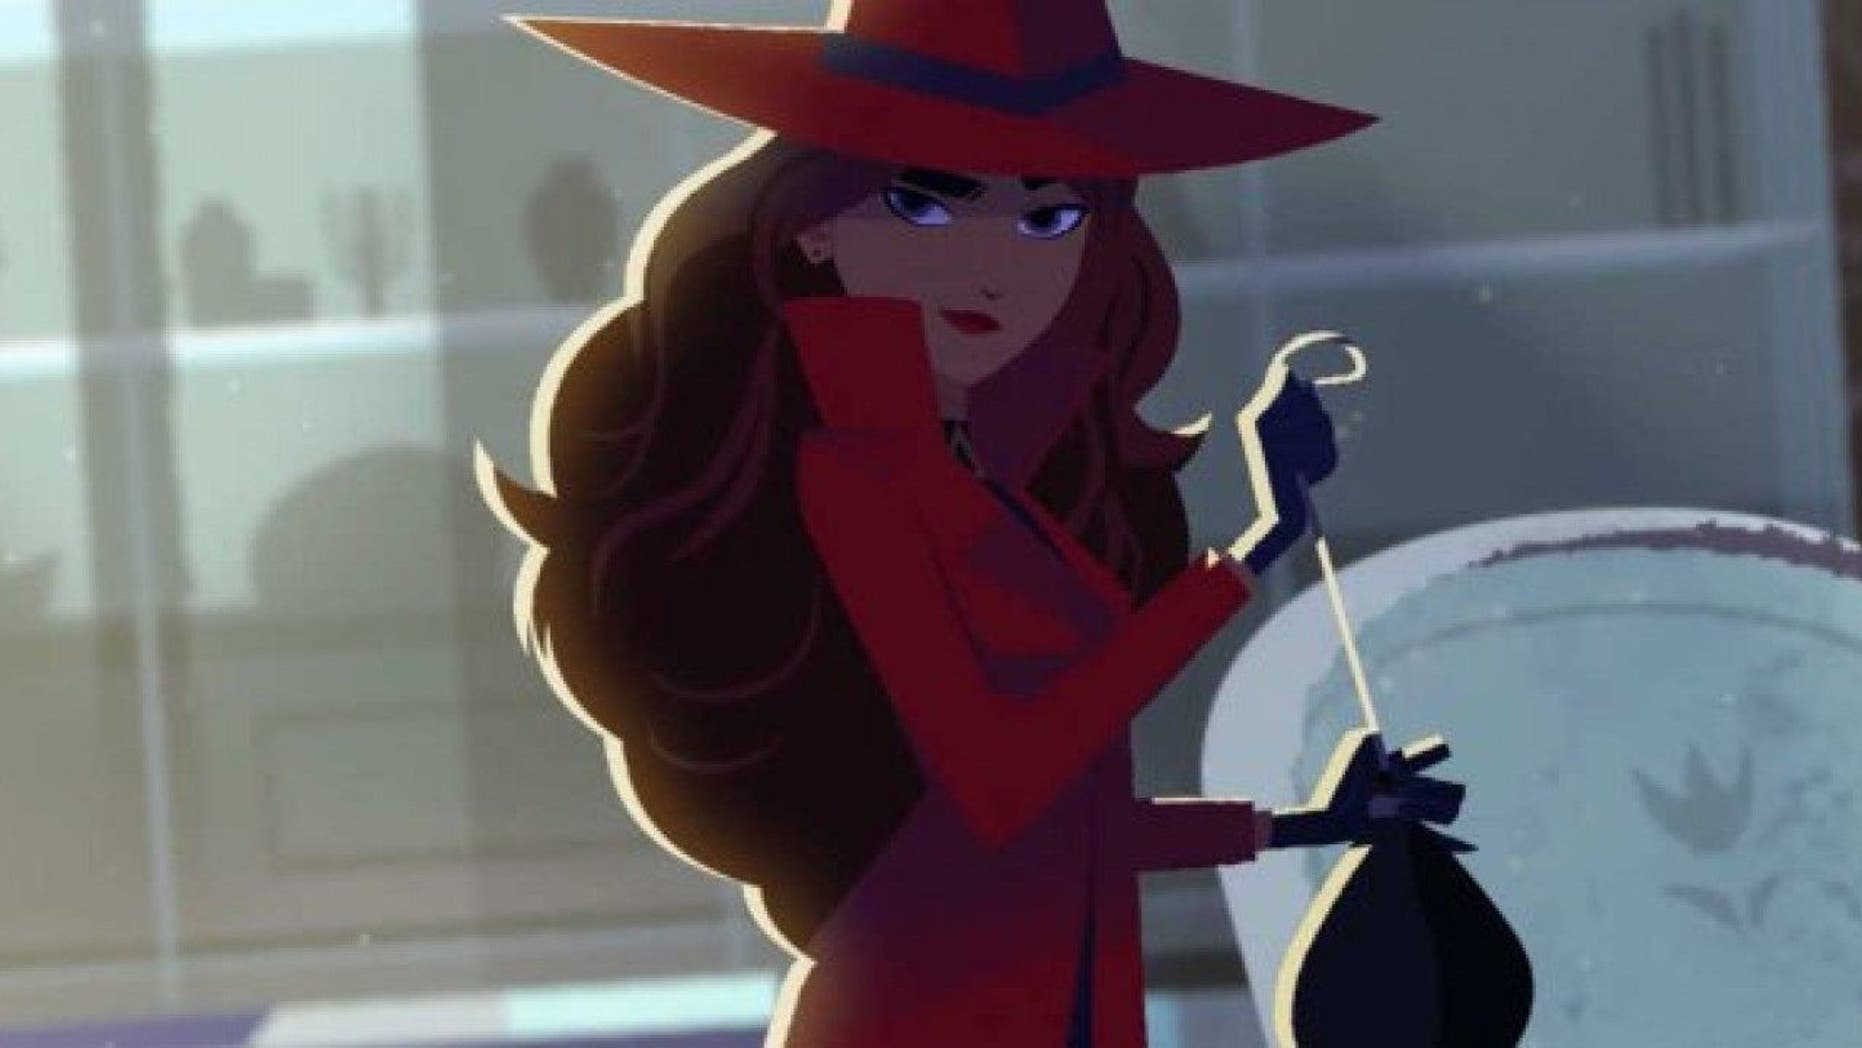 Carmen Sandiego's Trailer Tells the Origin Story of the Legendary Scam Artist